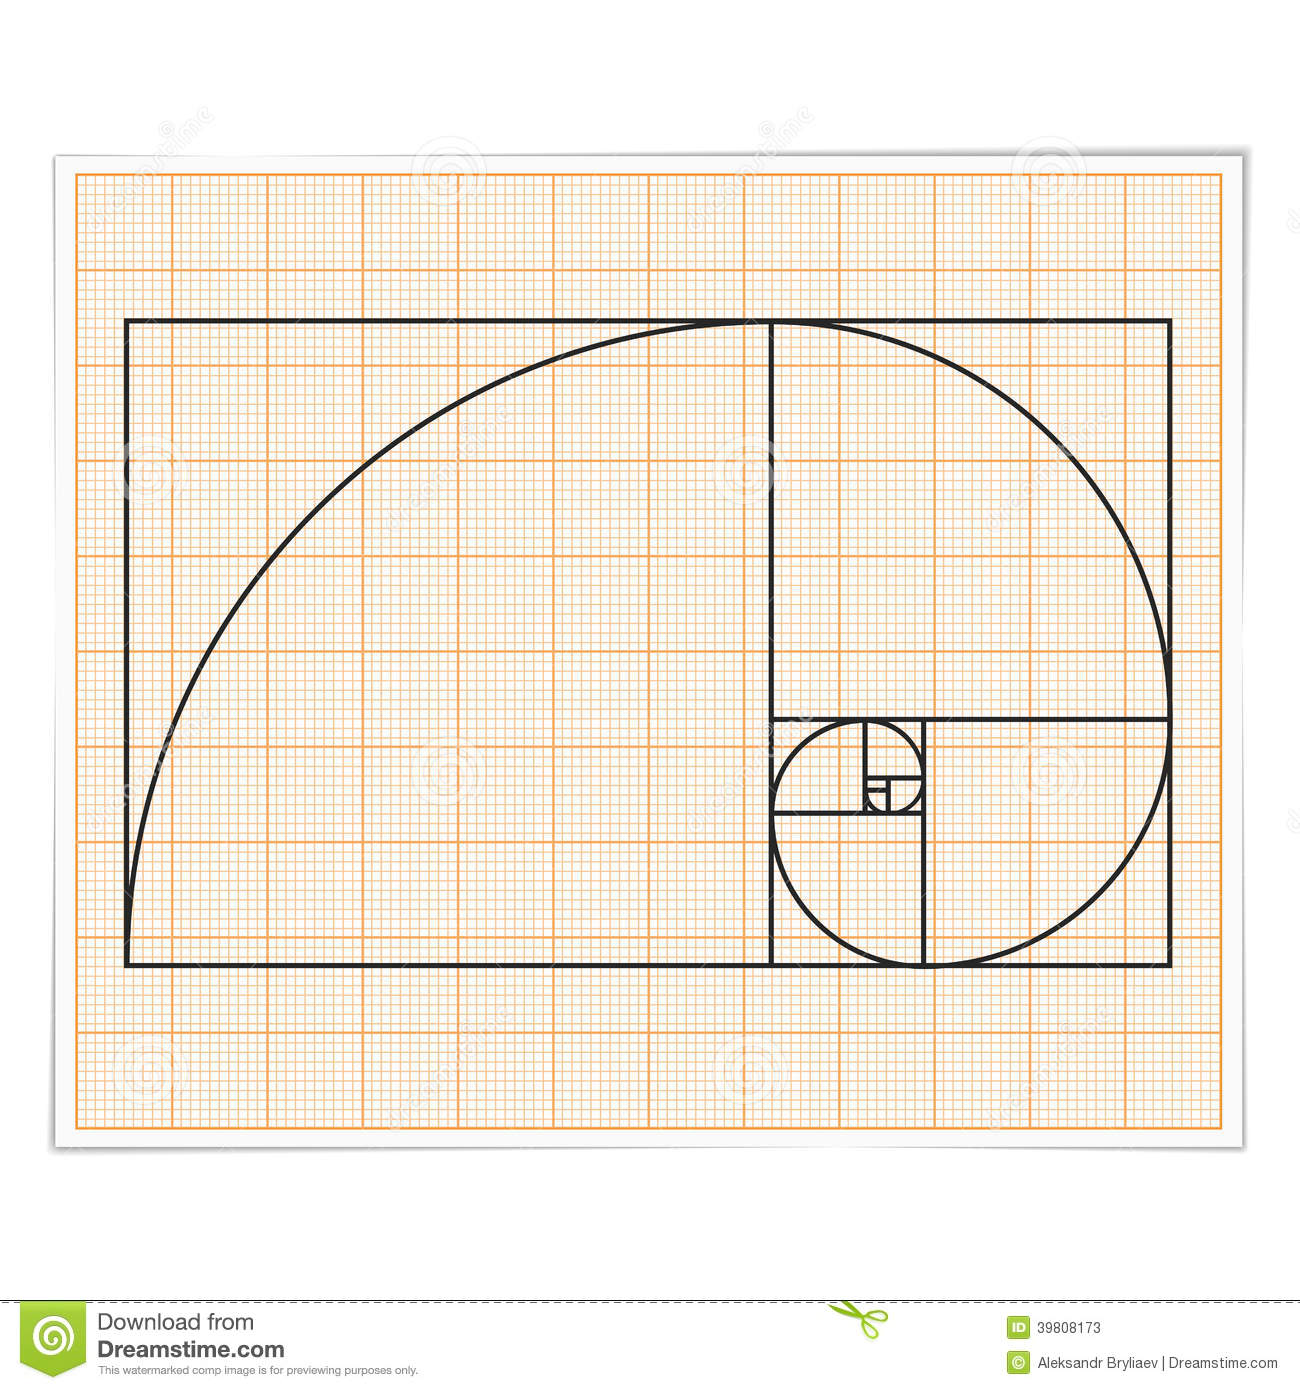 The Uses of Irrationality: Paper Sizes and the Golden Ratio